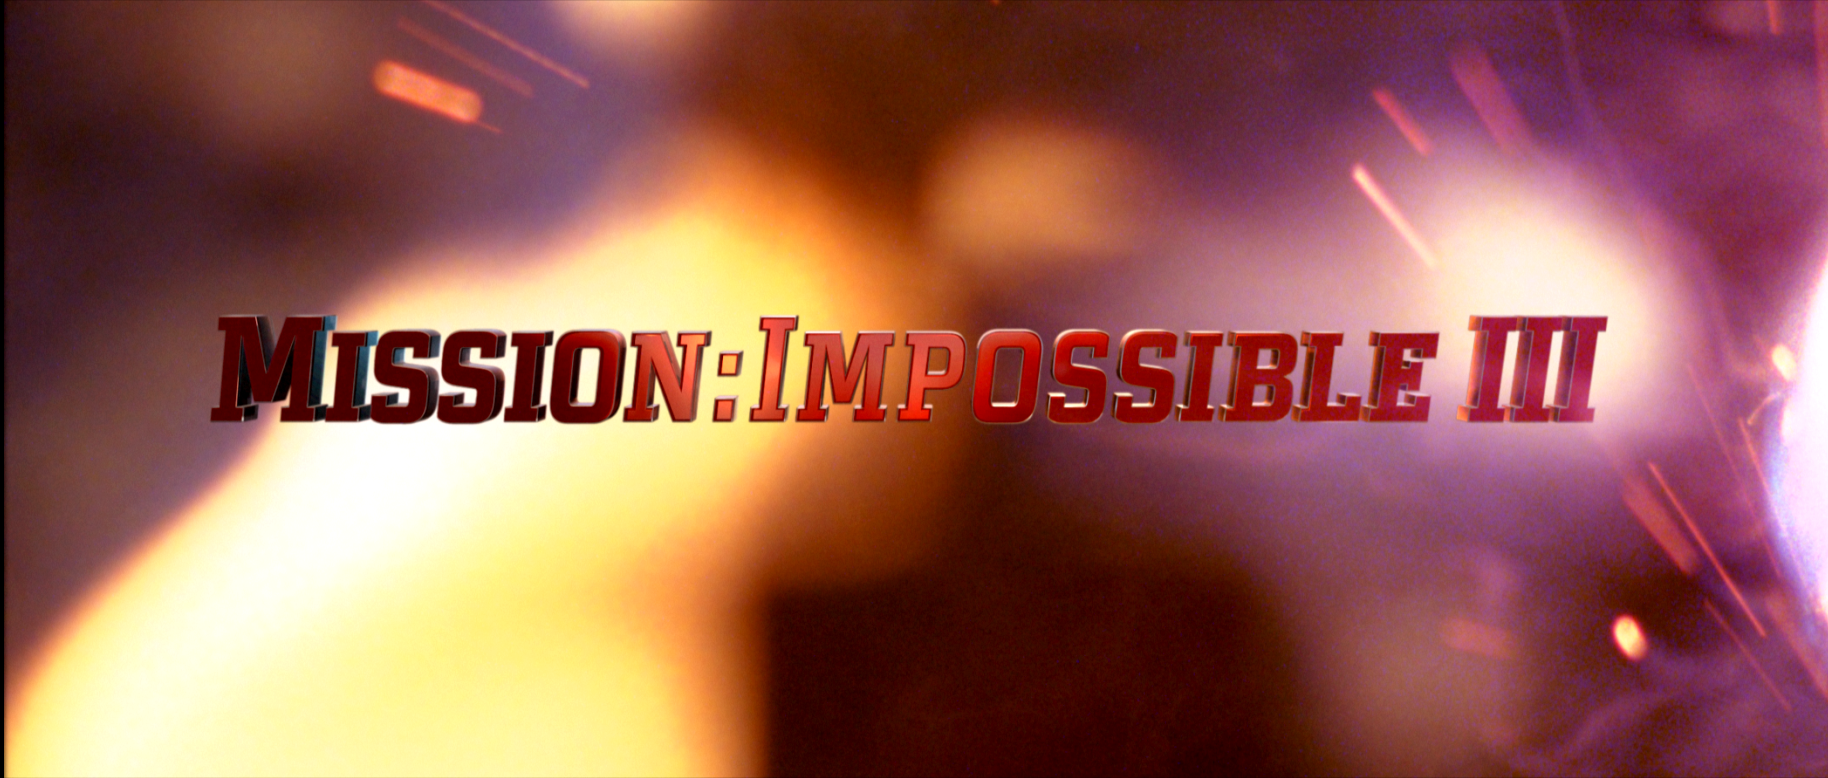 zai-ortiz_Mission_Impossible-3_11.png